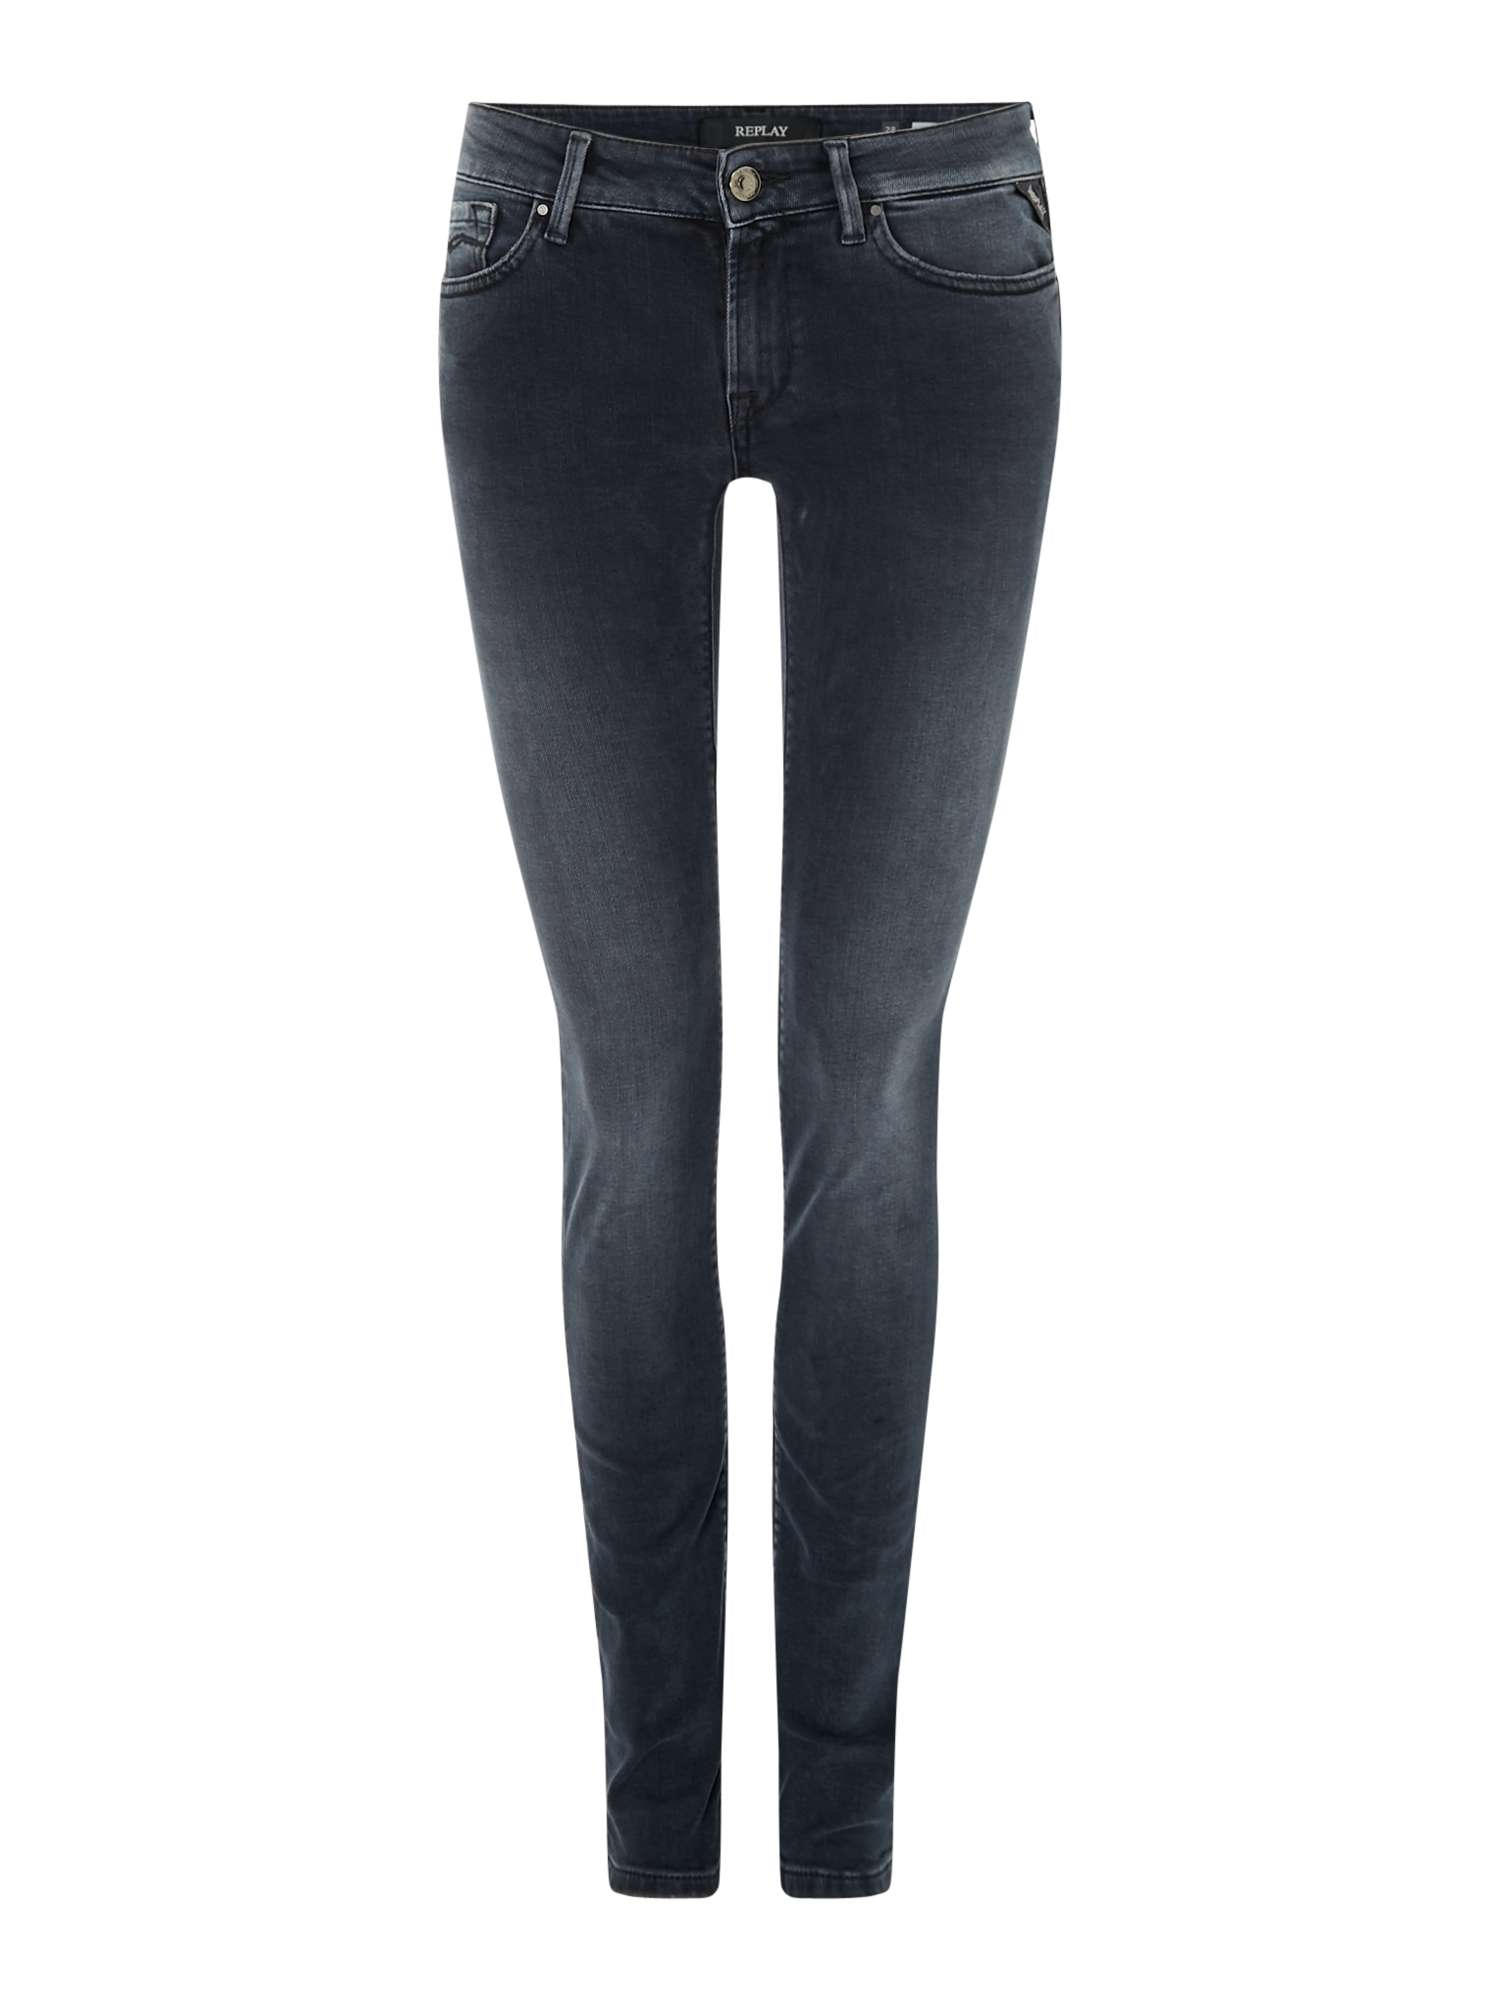 Skinny Fit Skinny Luz Luz Skinny Fit Replay Jeans Fit Jeans Luz Replay Replay wF5CZq